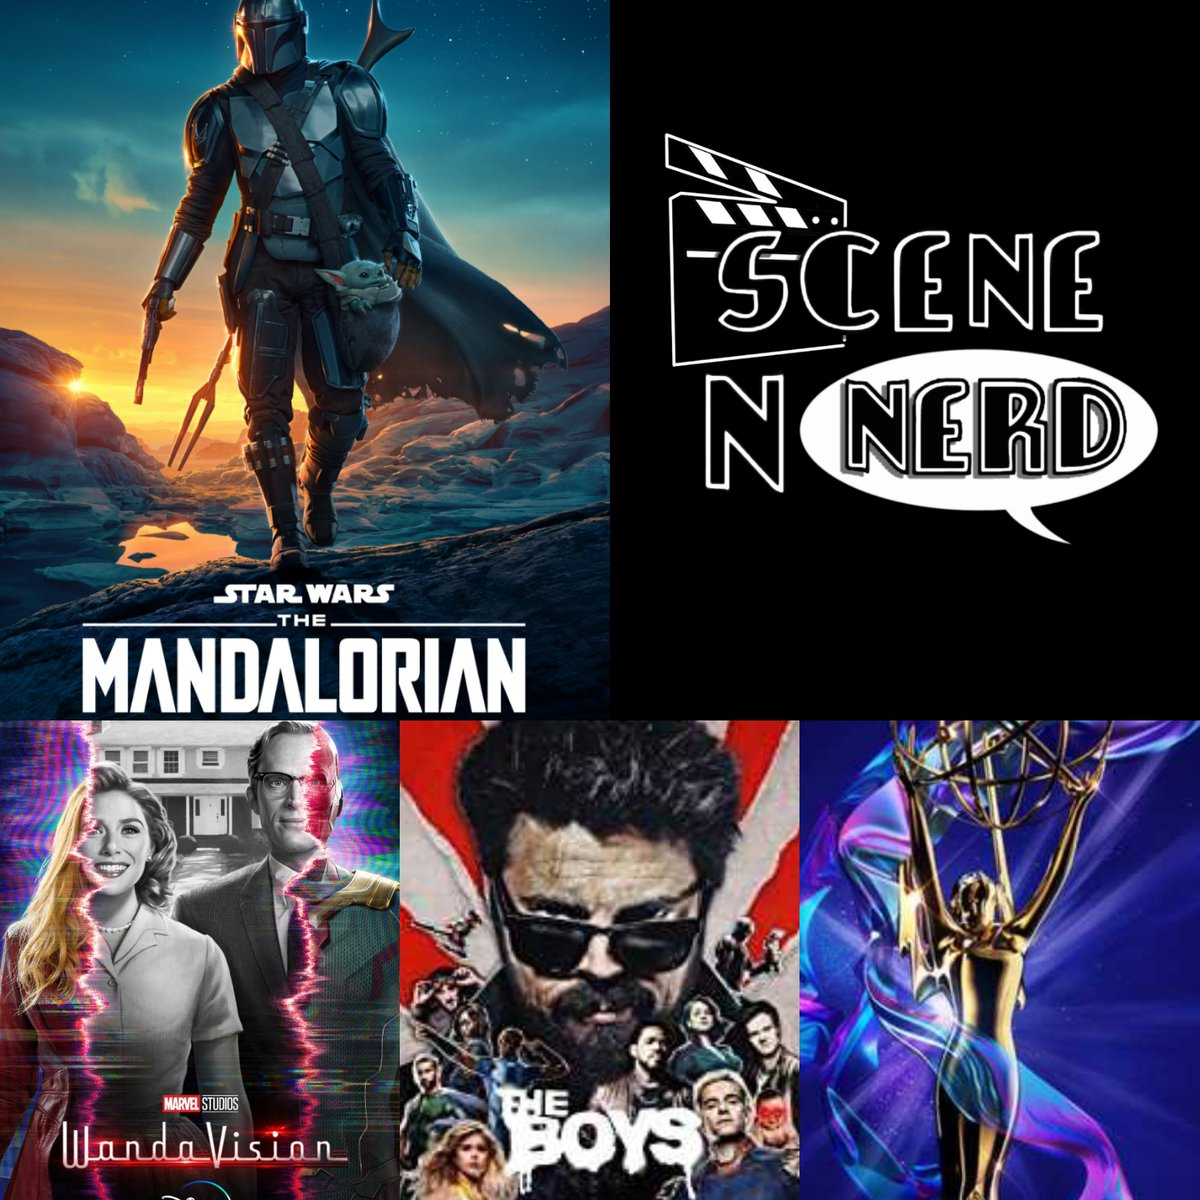 A brand NEW episode from @SceneNNerd is now LIVE for your listening pleasure.   The team talks #TheBoys, #WandaVision, #TheMandalorian and more - https://t.co/7mtolQB9XX  #PodernFamily #PodcastHQ #PodNation https://t.co/FV5vgwdL4h